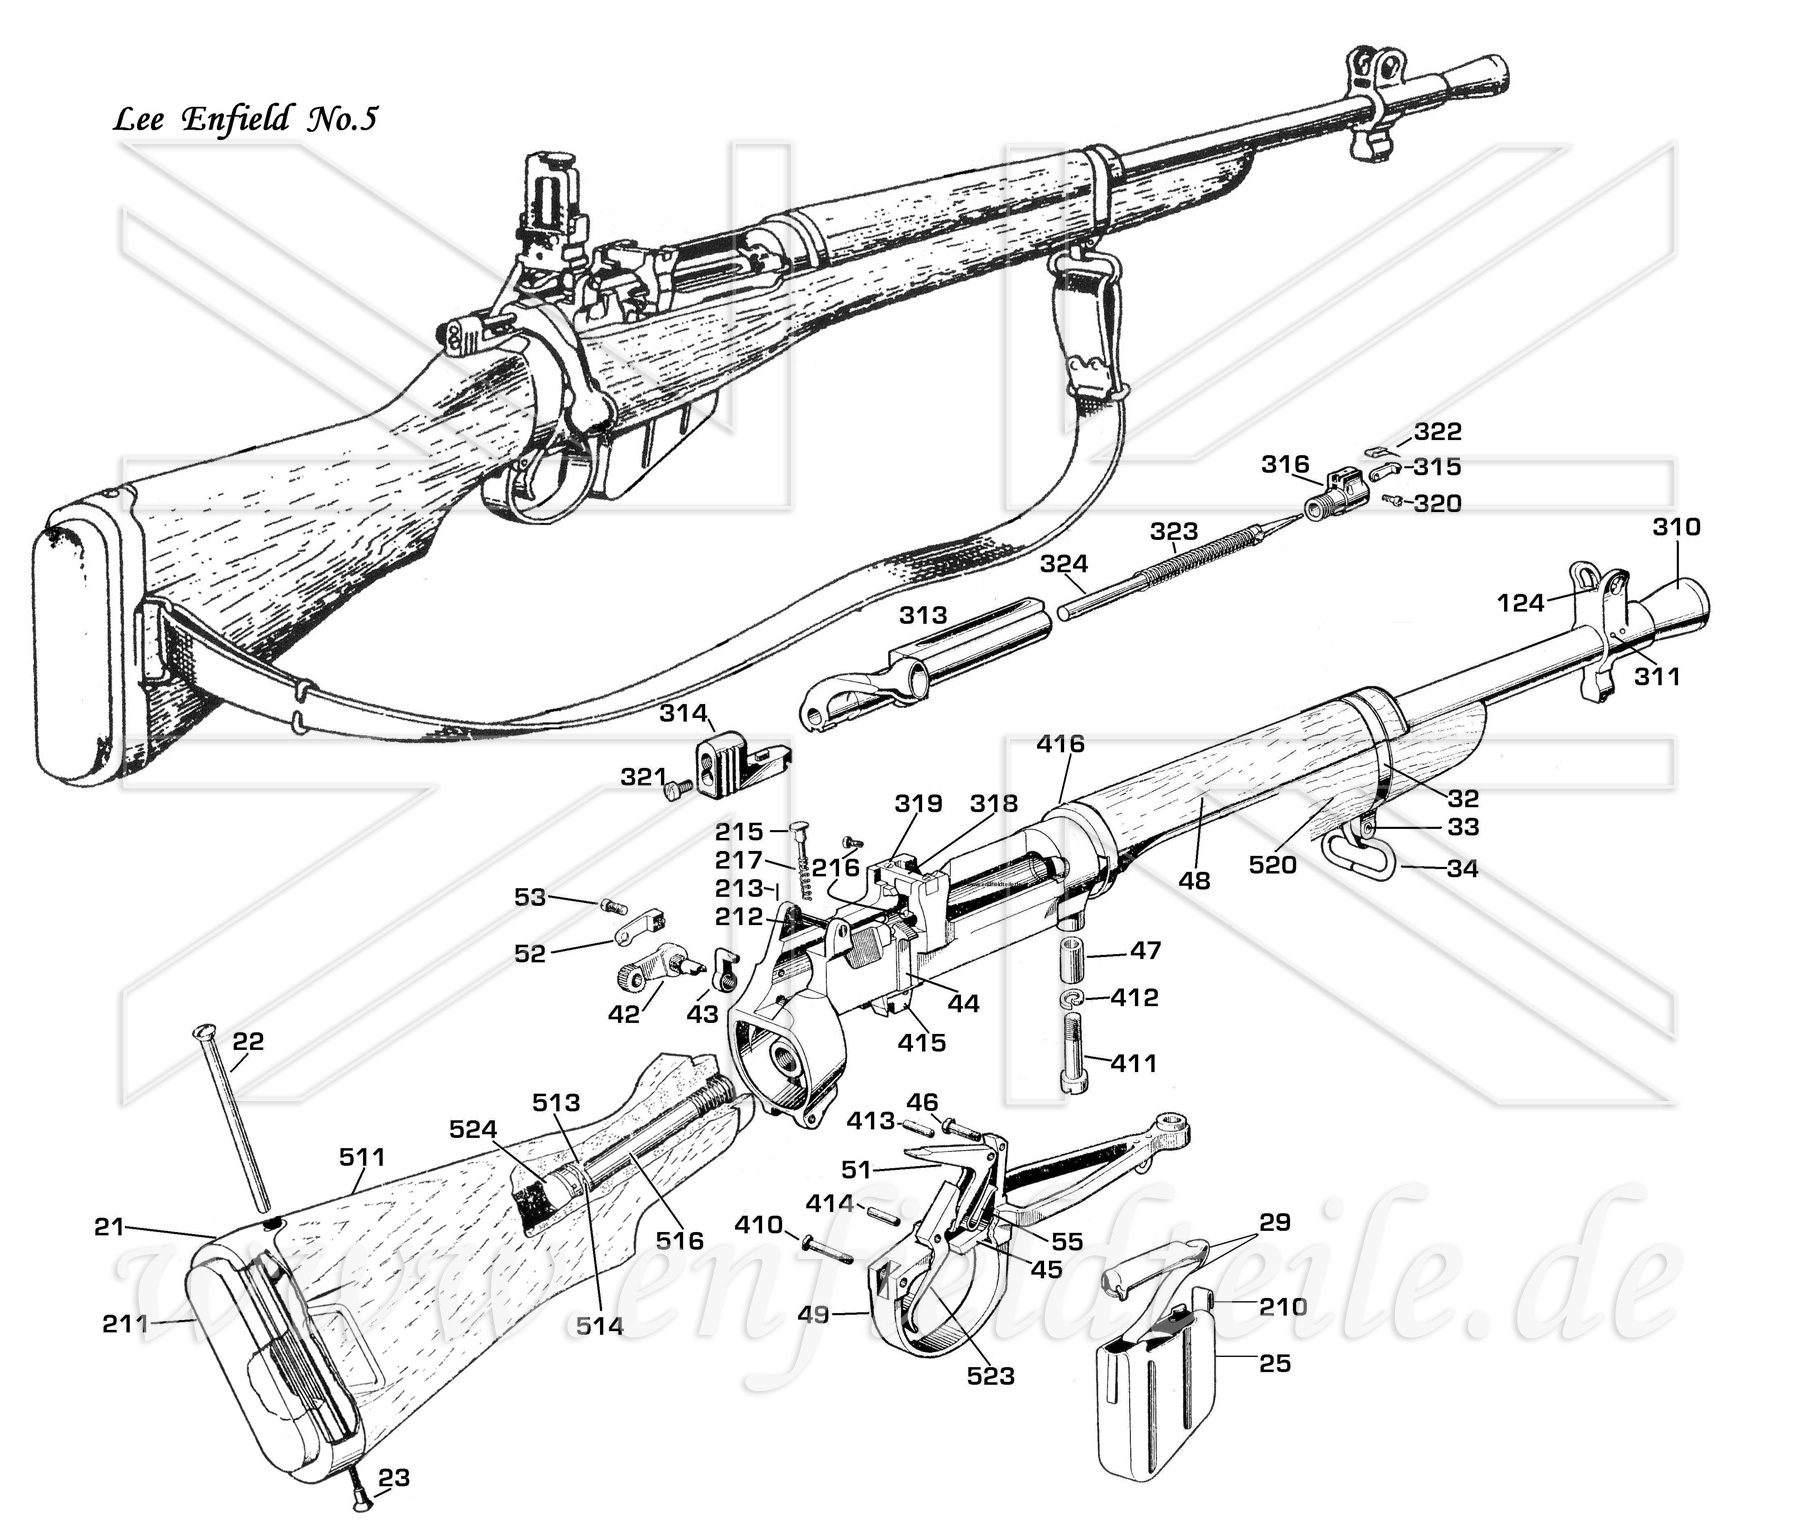 Lee Enfield Parts